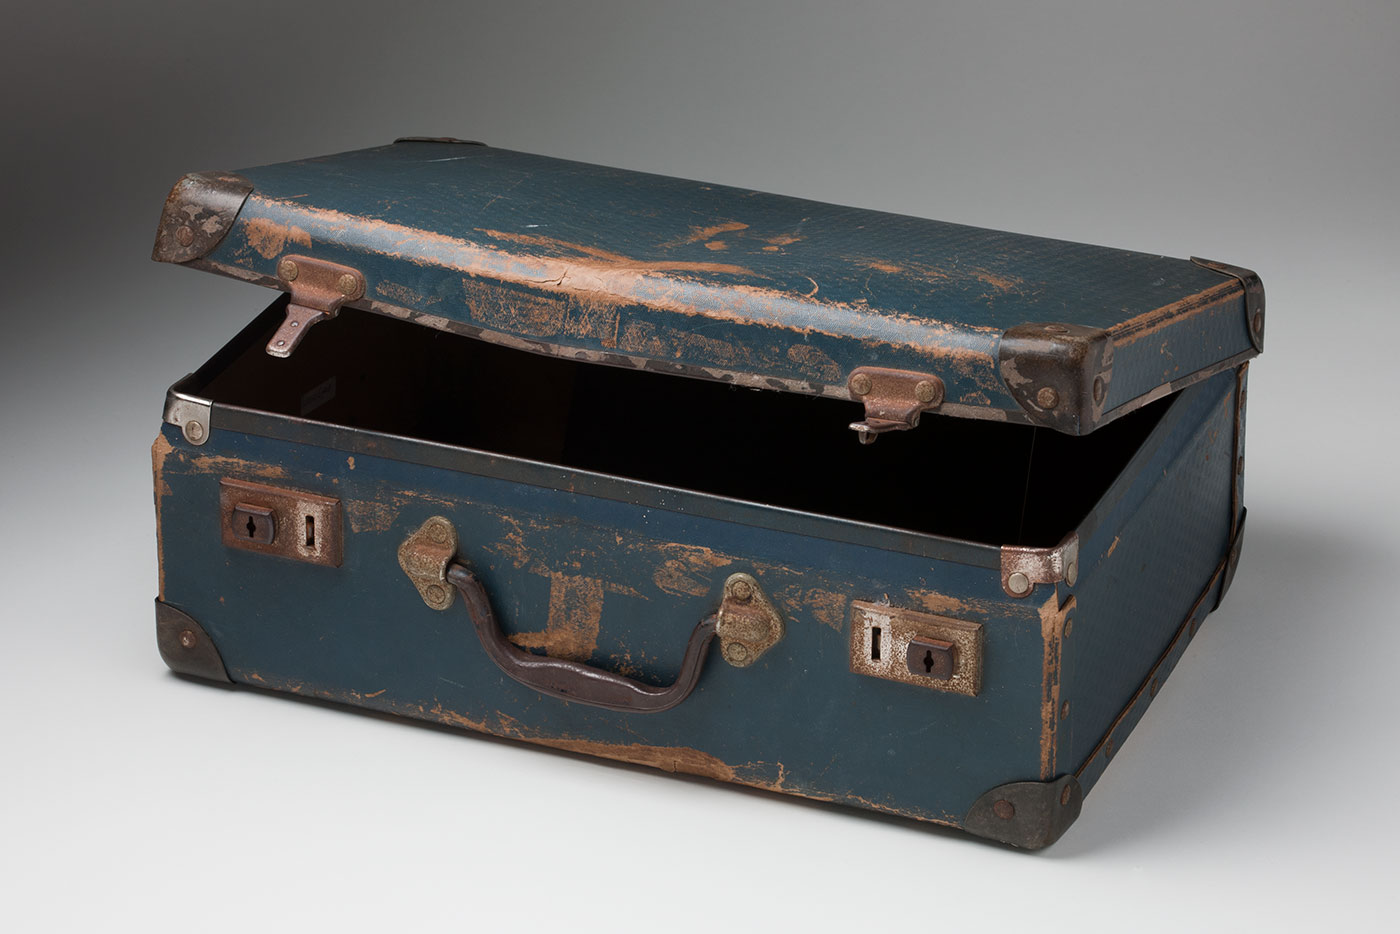 Photograph of a small blue suitcase with reinforced corners, metal locks and a worn black handle. The lid is partially open. - click to view larger image